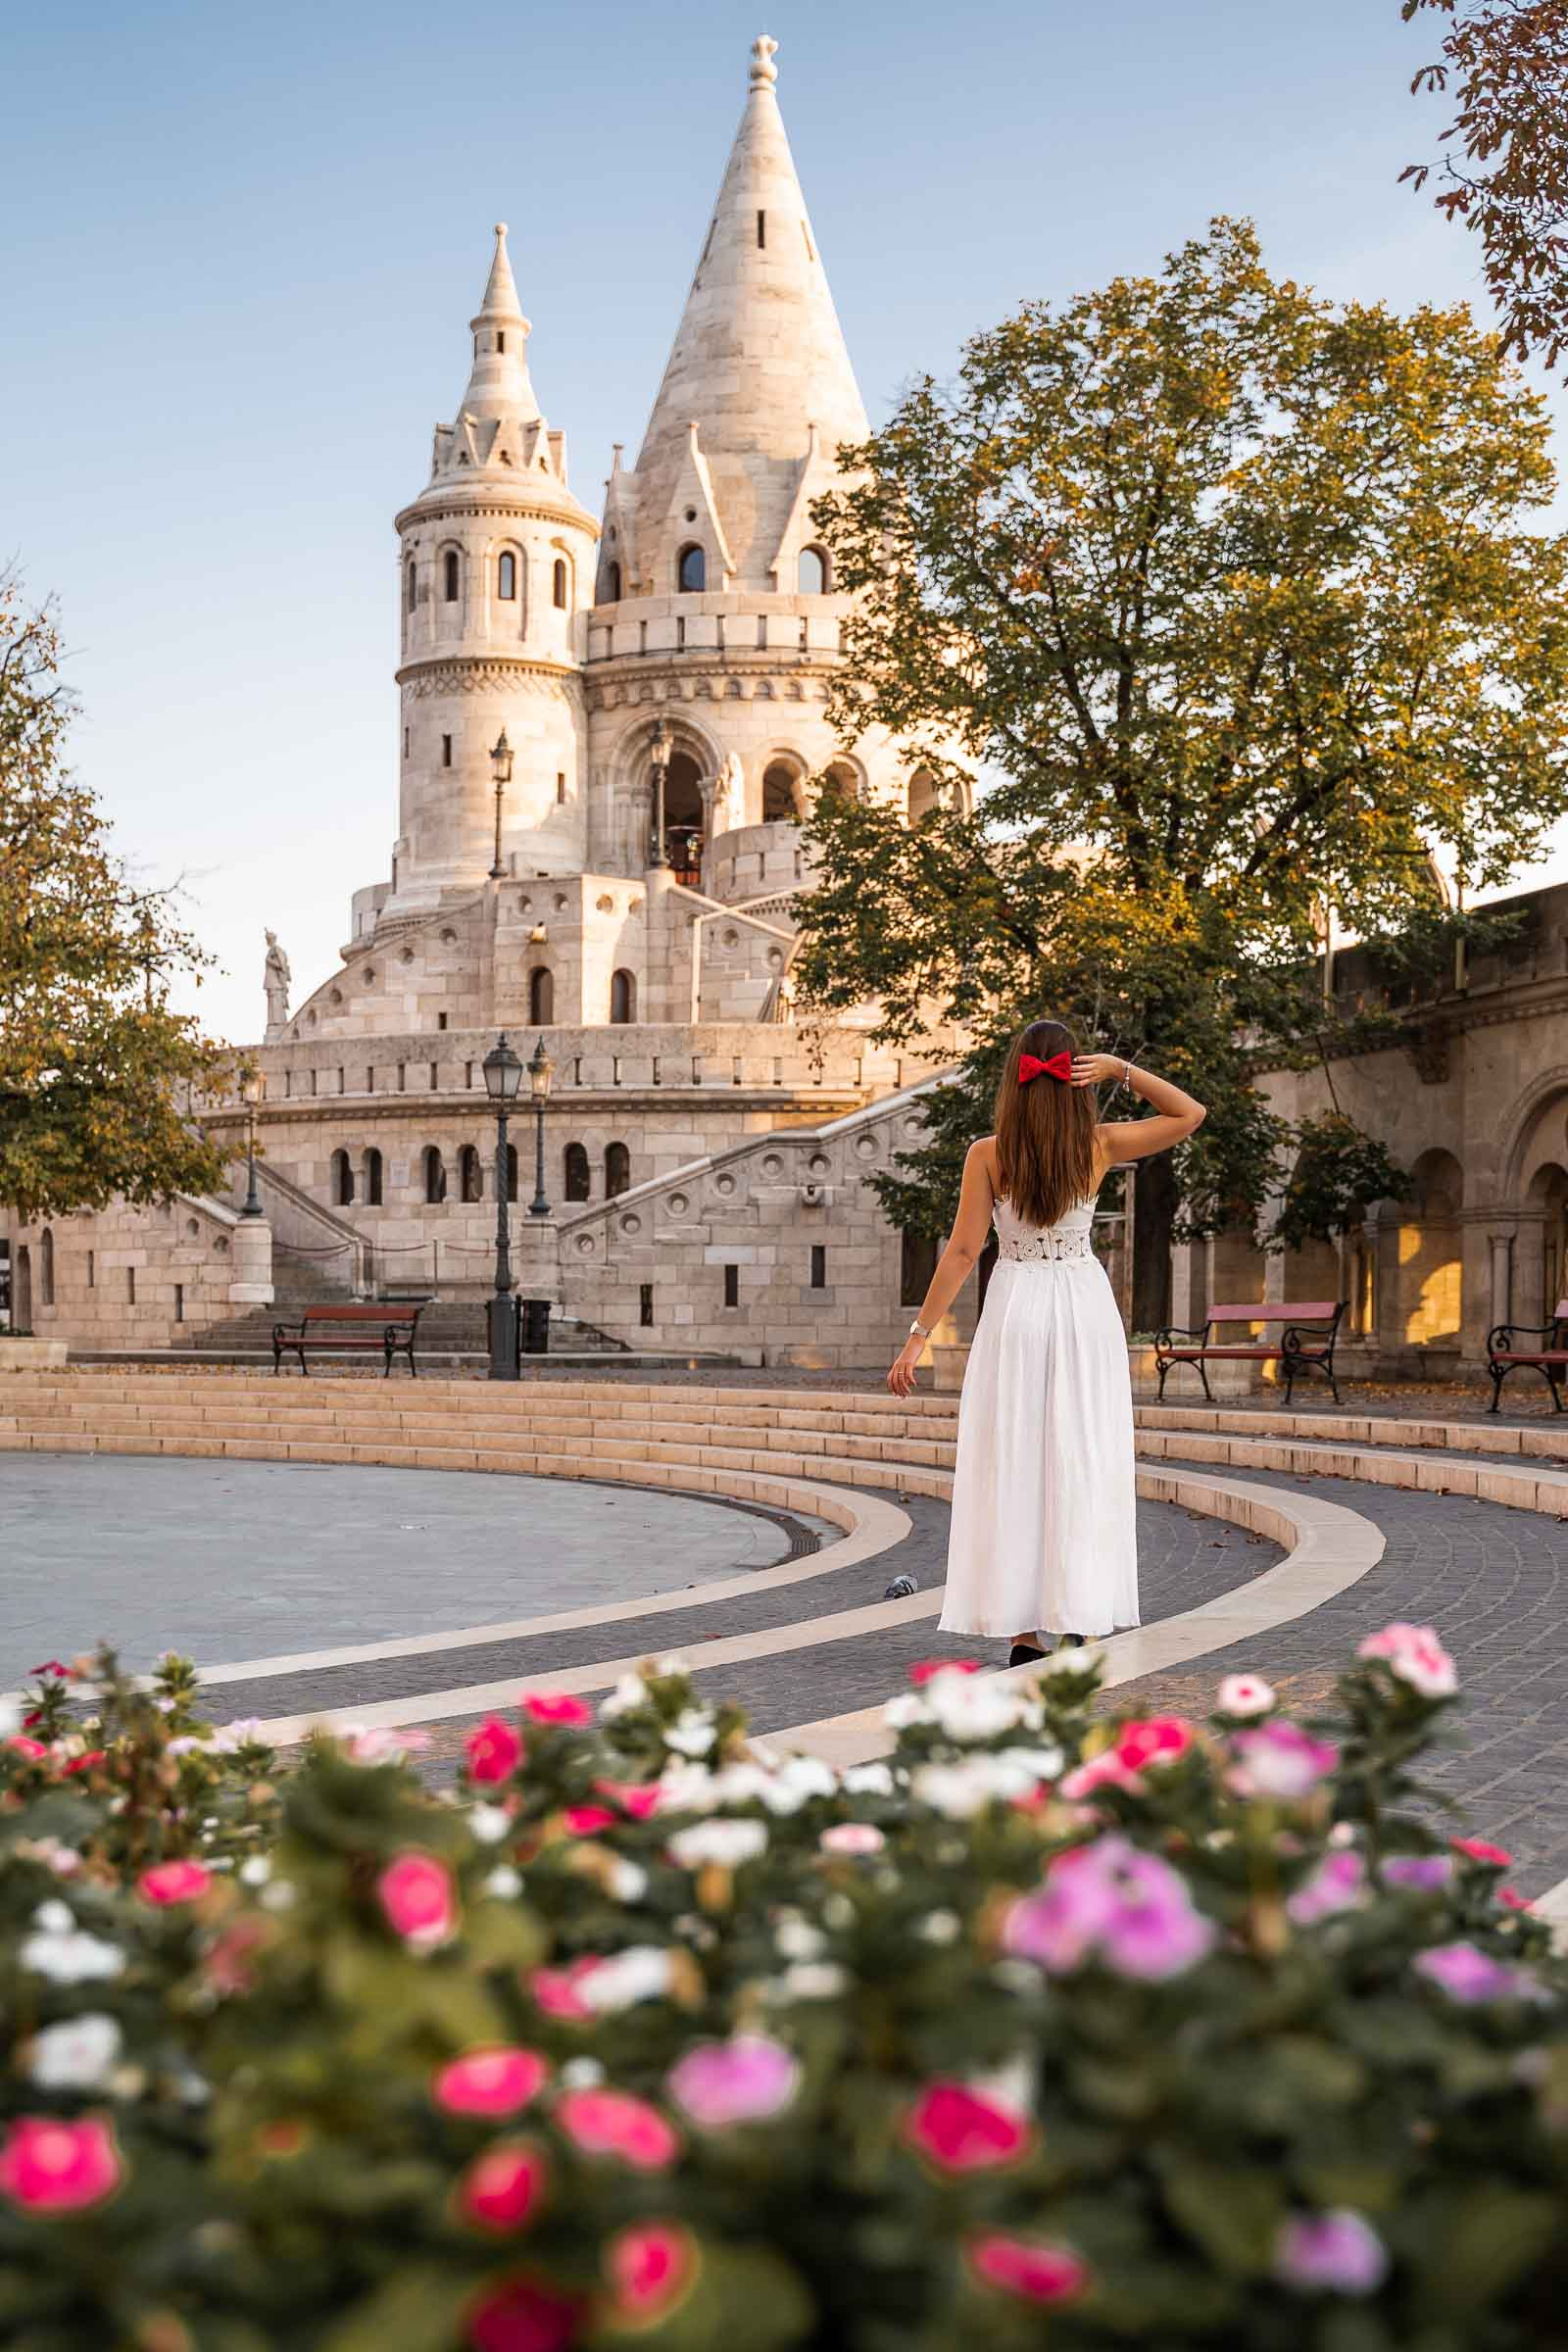 Girl in white dress standing in front of the Fisherman's Bastion in Budapest with colorful flowers in the foreground